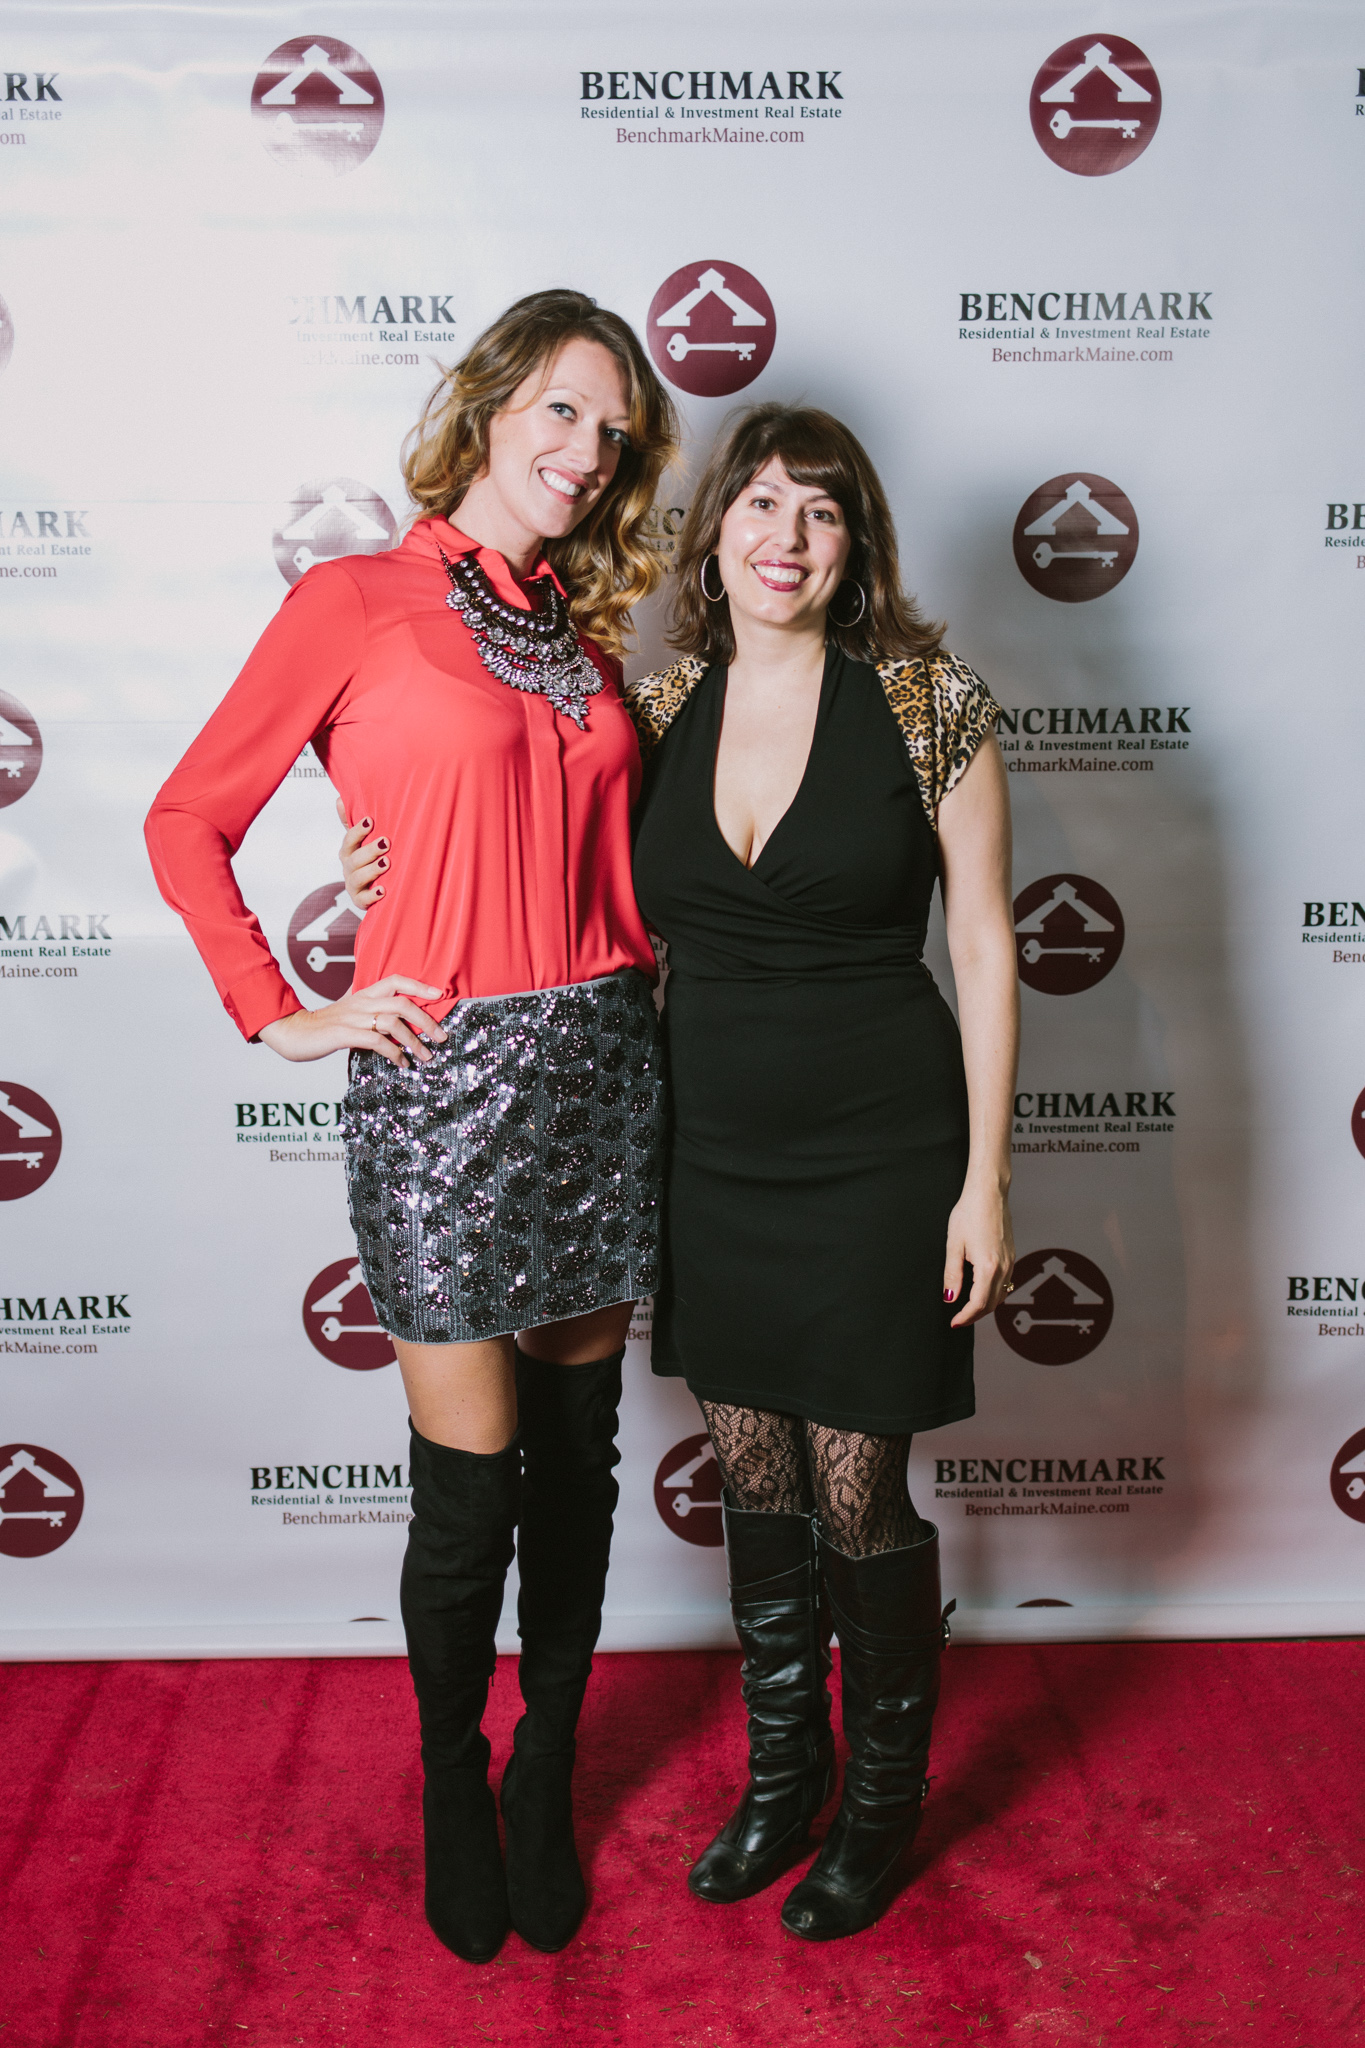 Benchmark_Holiday_Party_SR-032.jpg